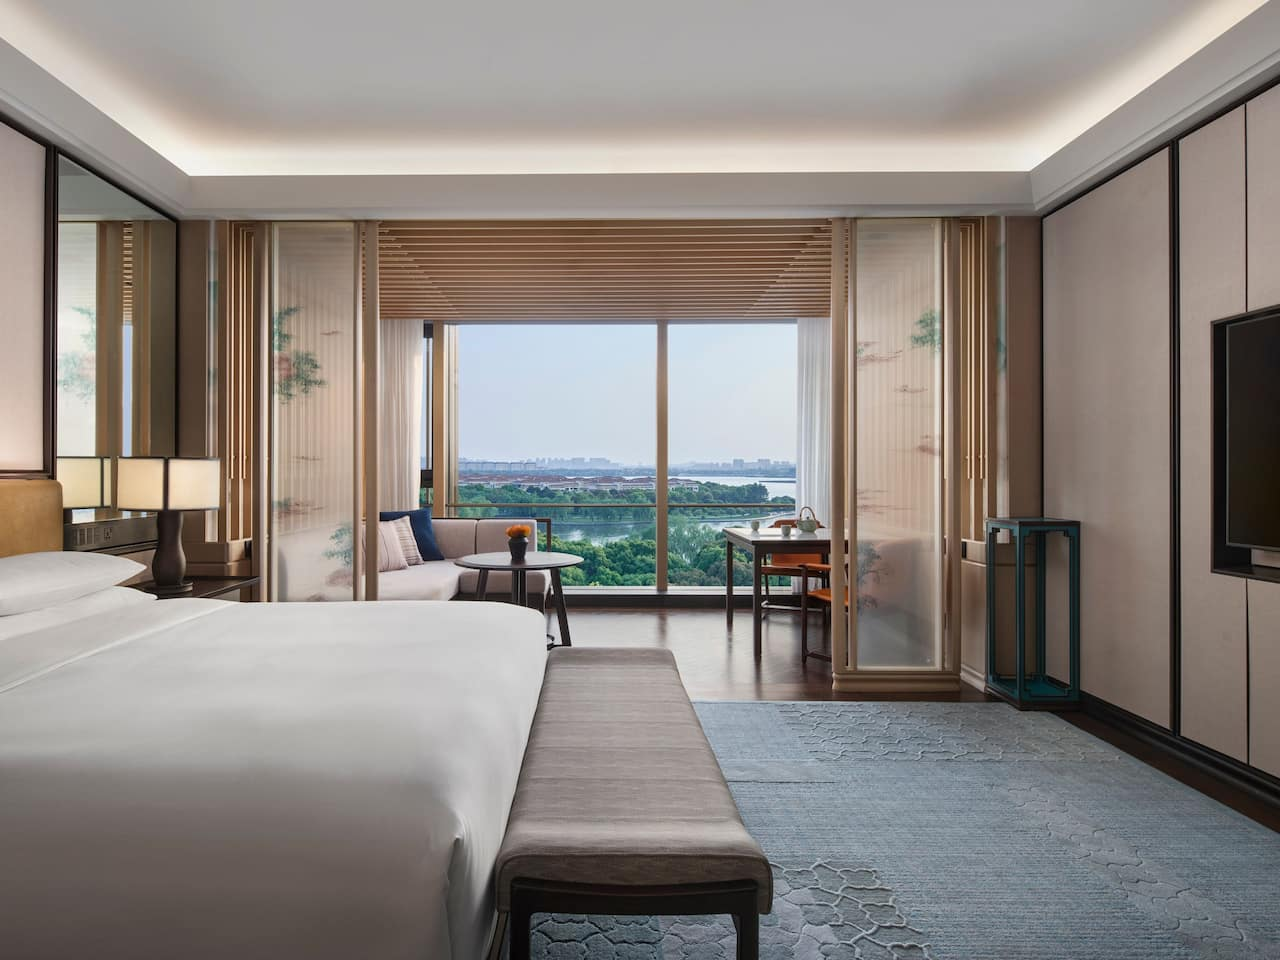 Deluxe King Room at Park Hyatt Suzhou